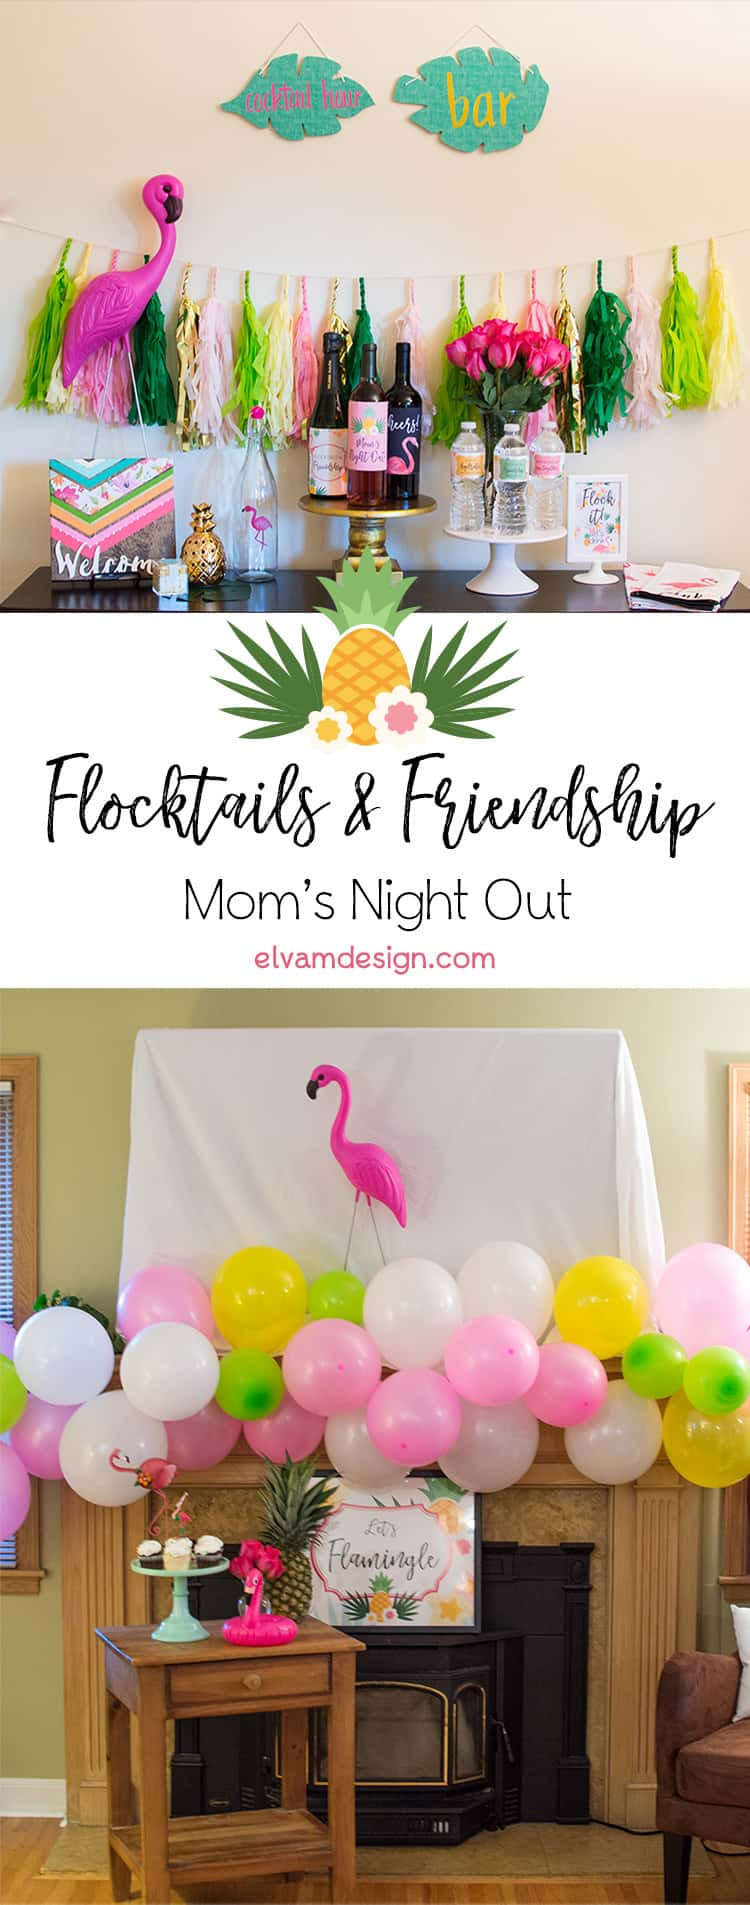 Check out this Flocktails and Friendship: Mom's Night Out party from Elva M Design Studio. Flamingos and Pineapples create a fun party backdrop as the mom' sip on wine!